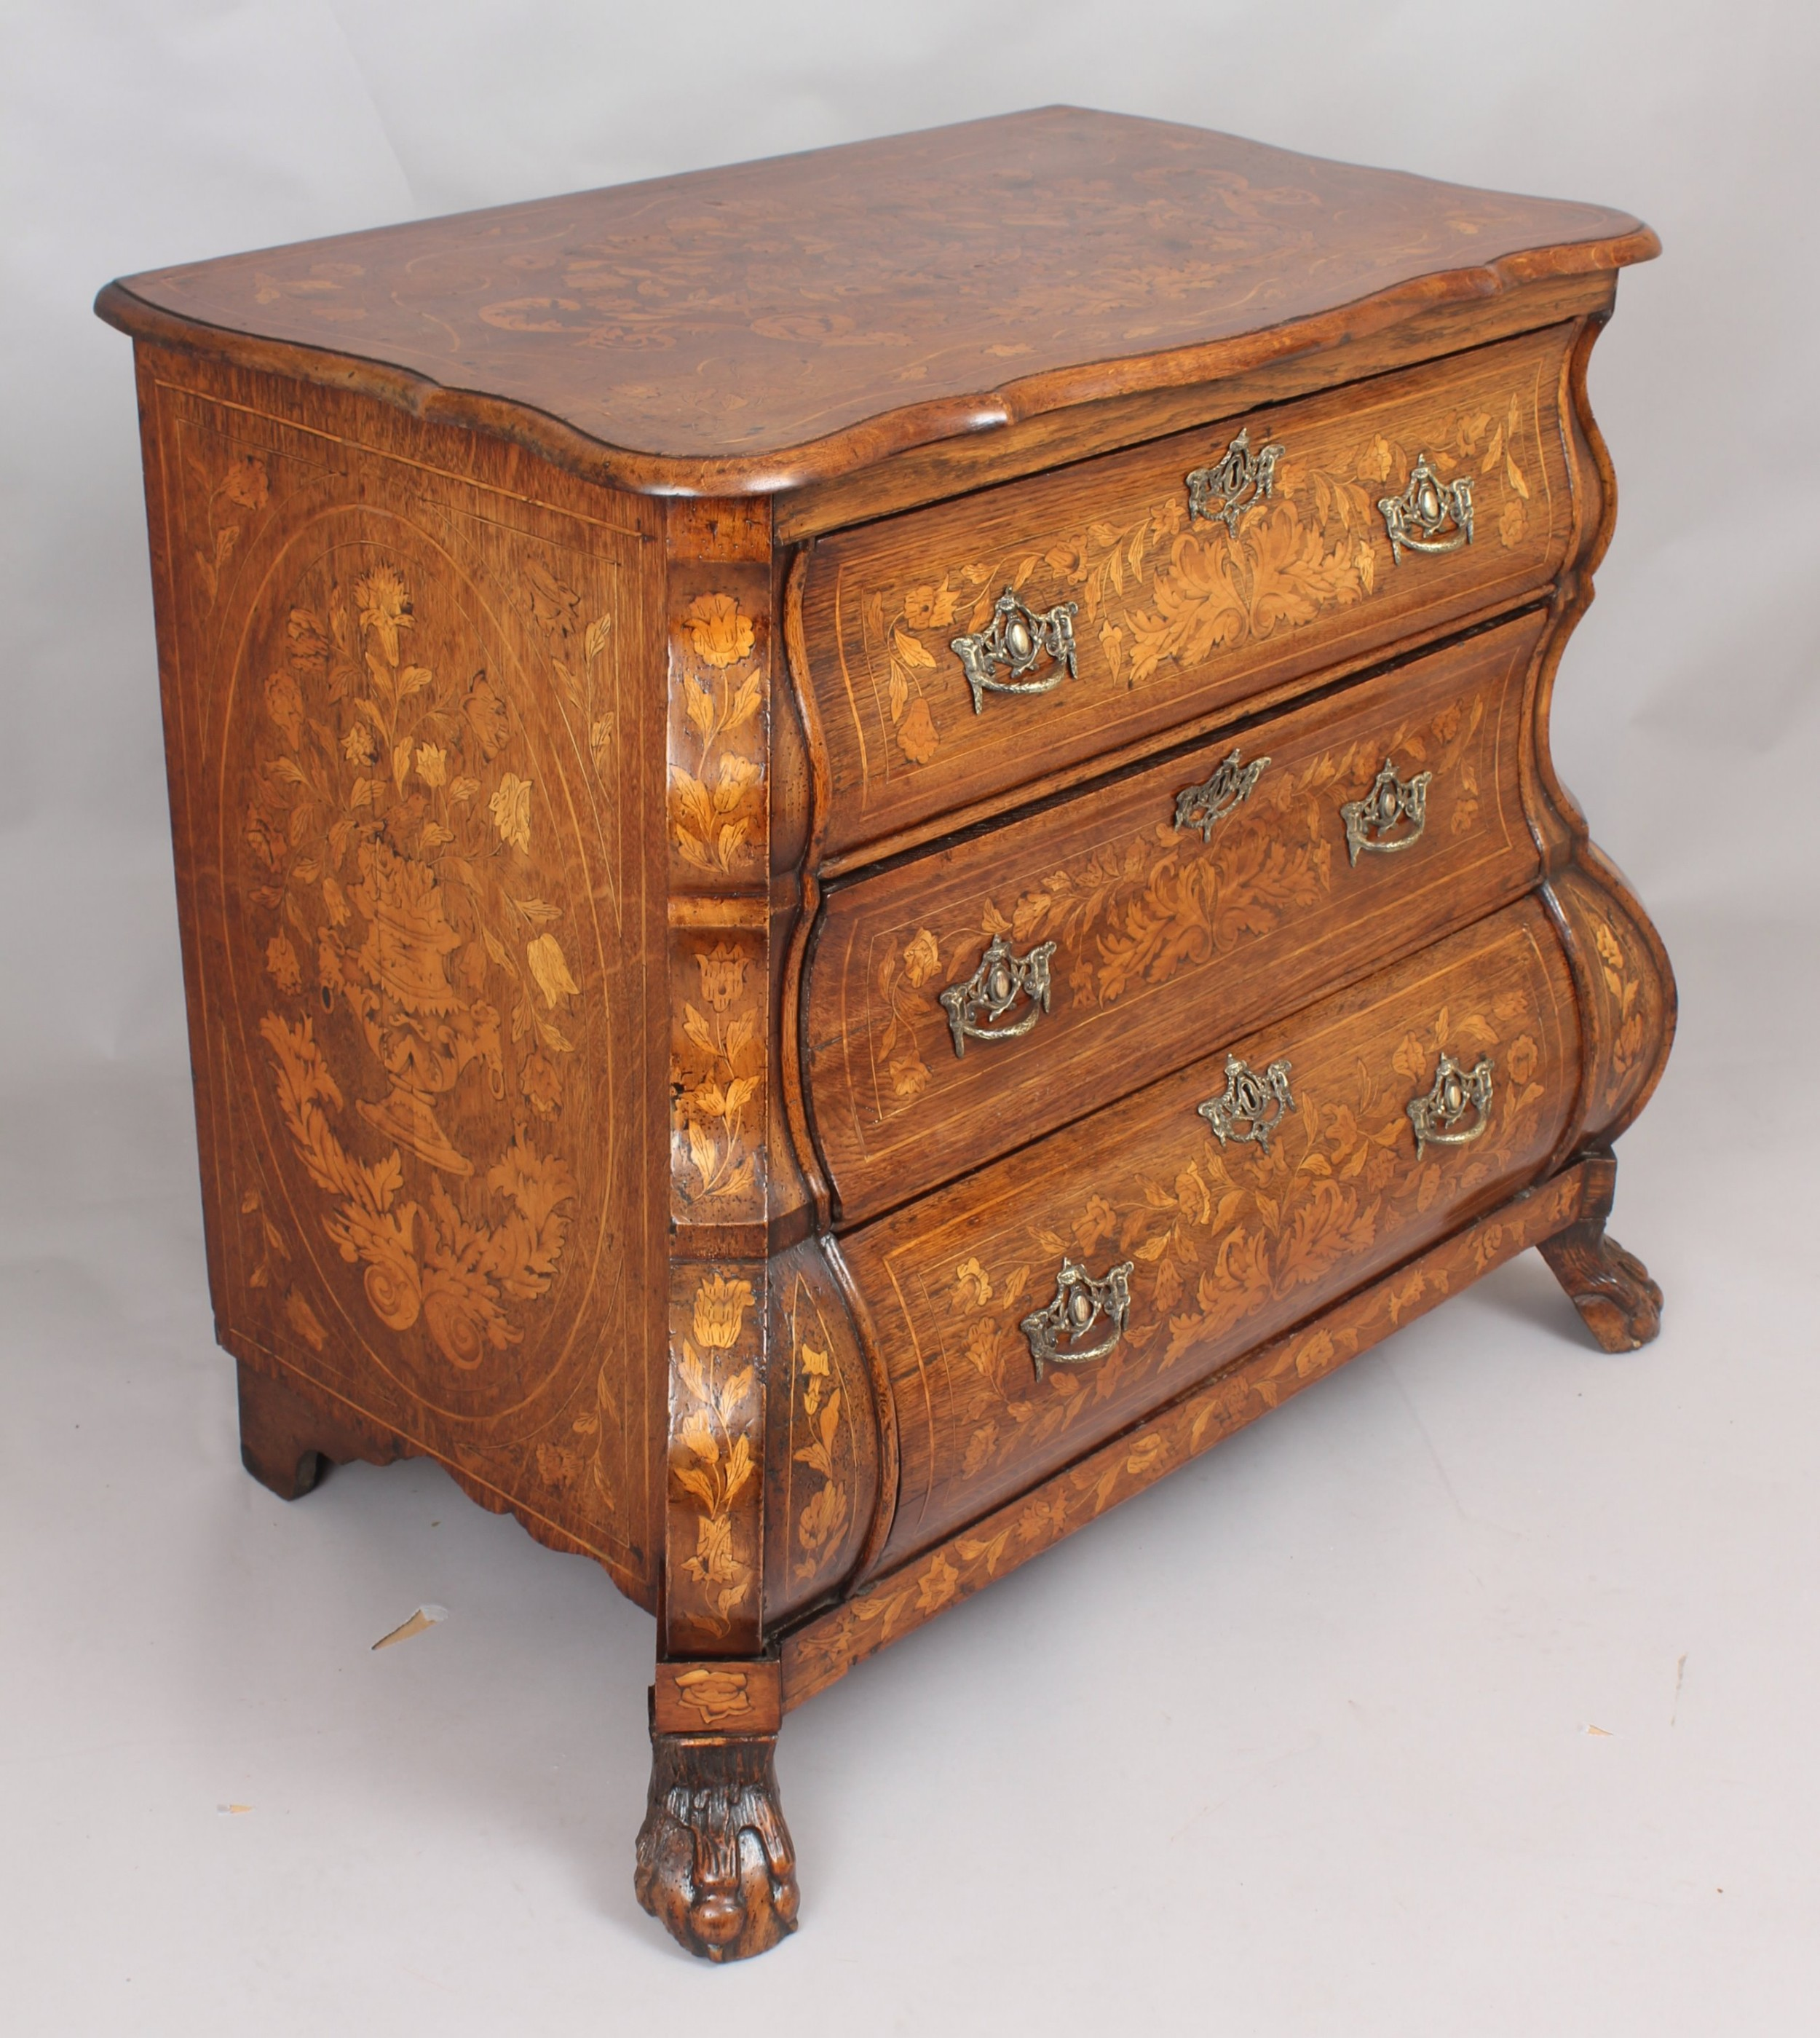 eighteenth century dutch walnut and marquetry chestofdrawers of bold bombe form